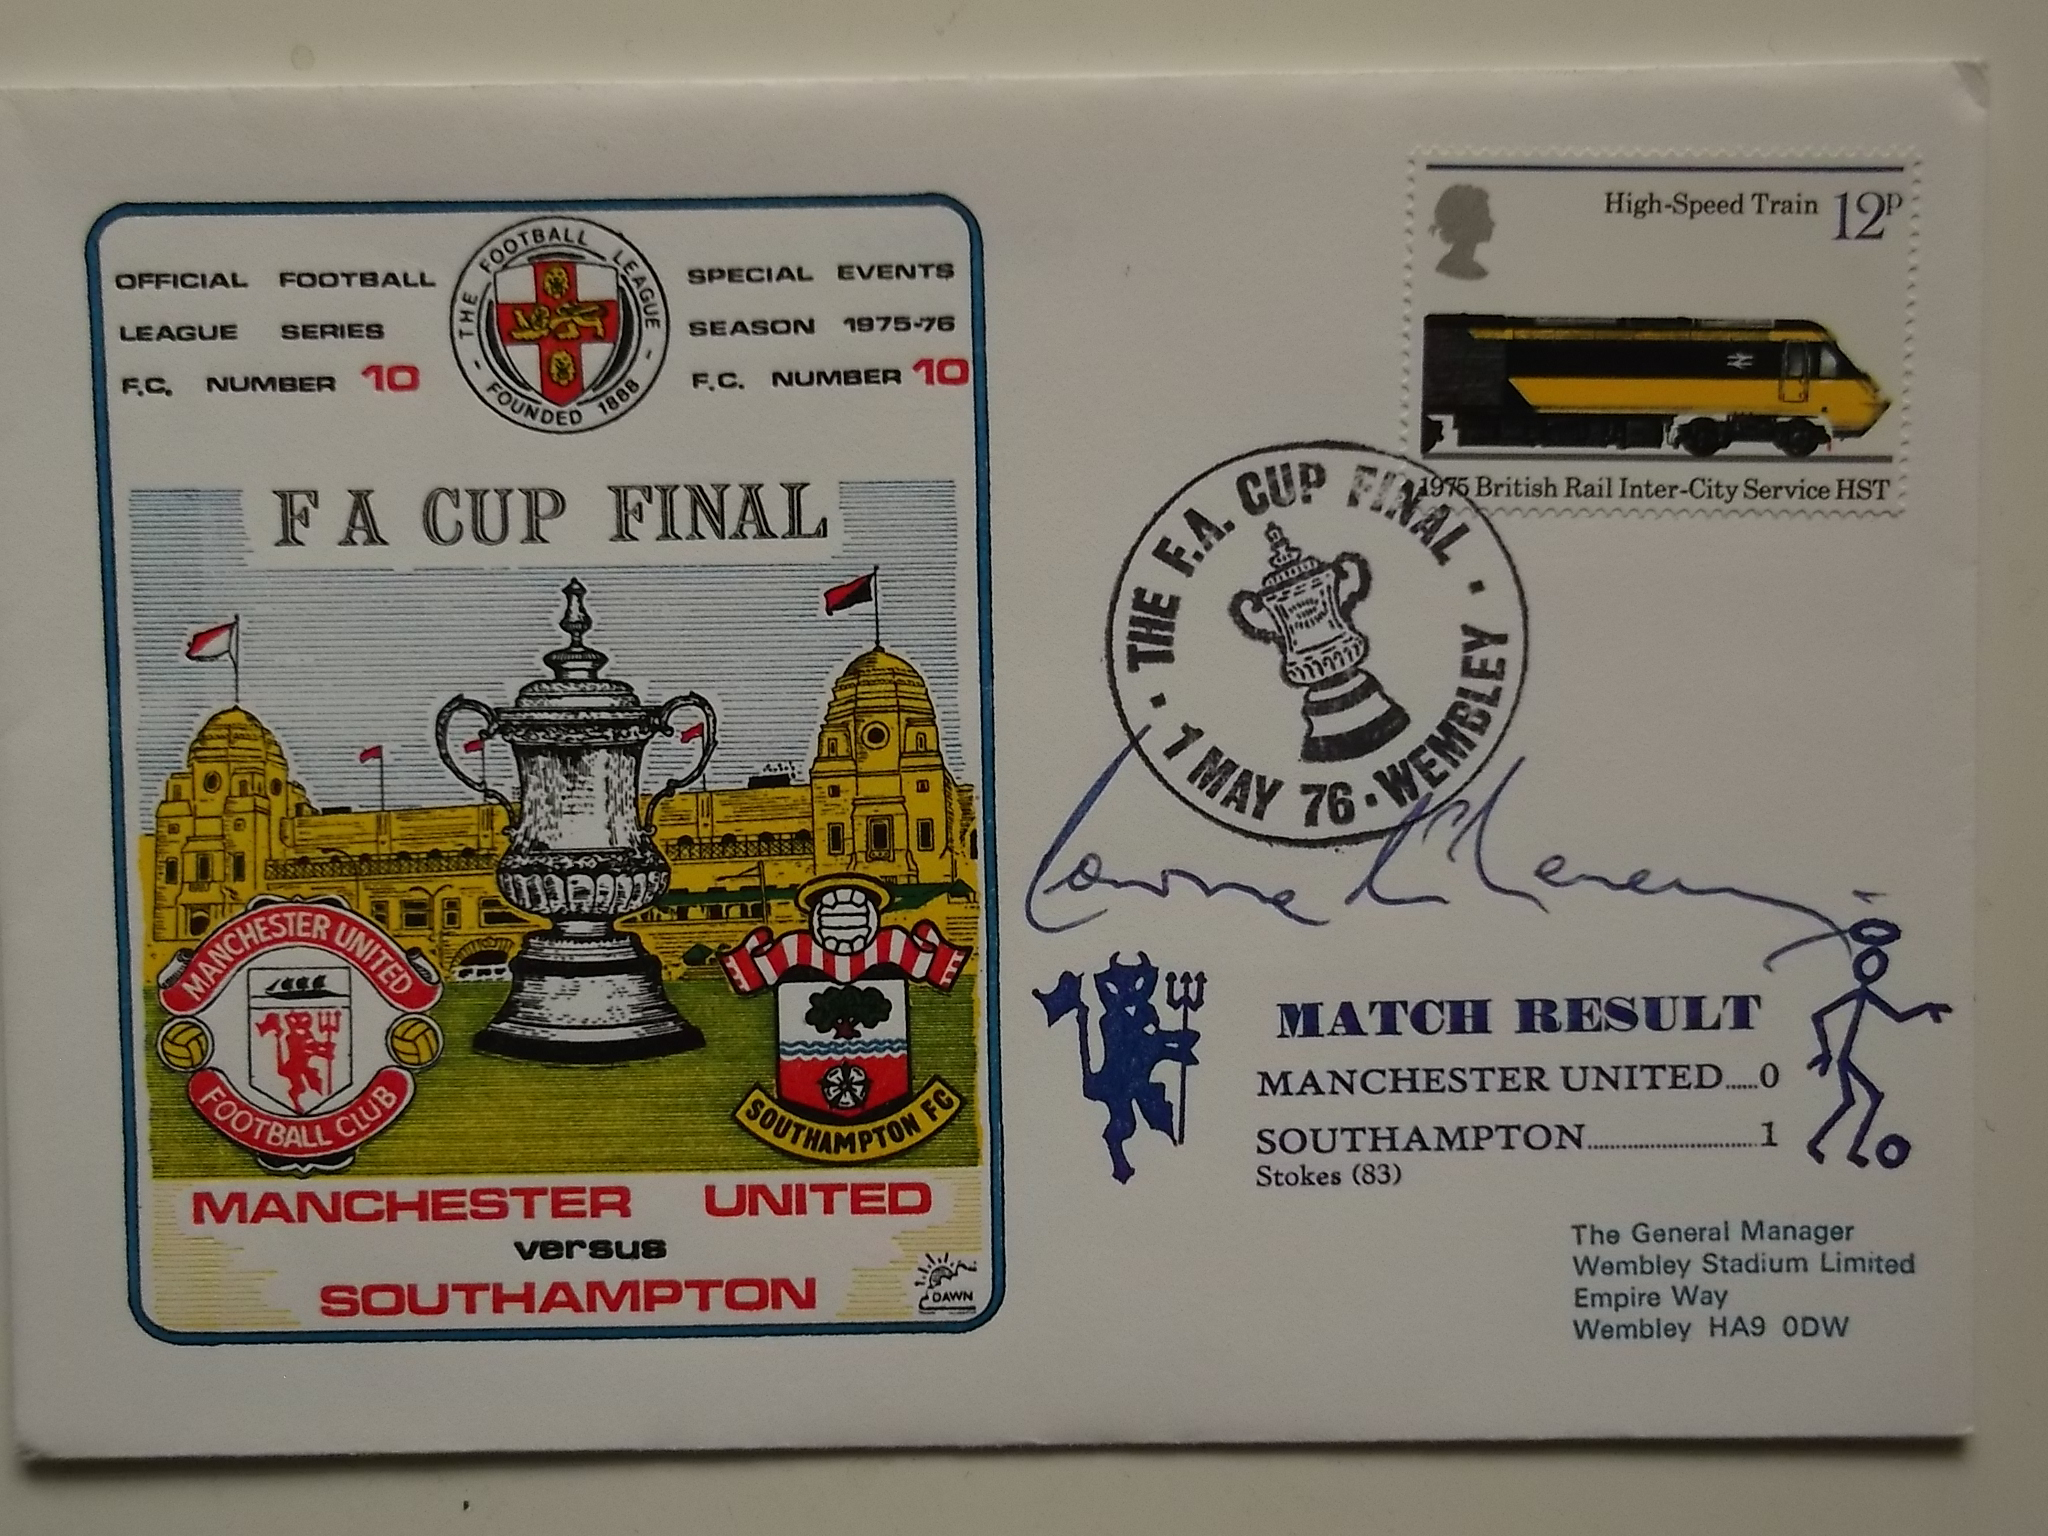 1976 FA CUP FINAL MANCHESTER UTD V SOUTHAMPTON POSTAL COVER SIGNED BY LAWRIE McMENEMY